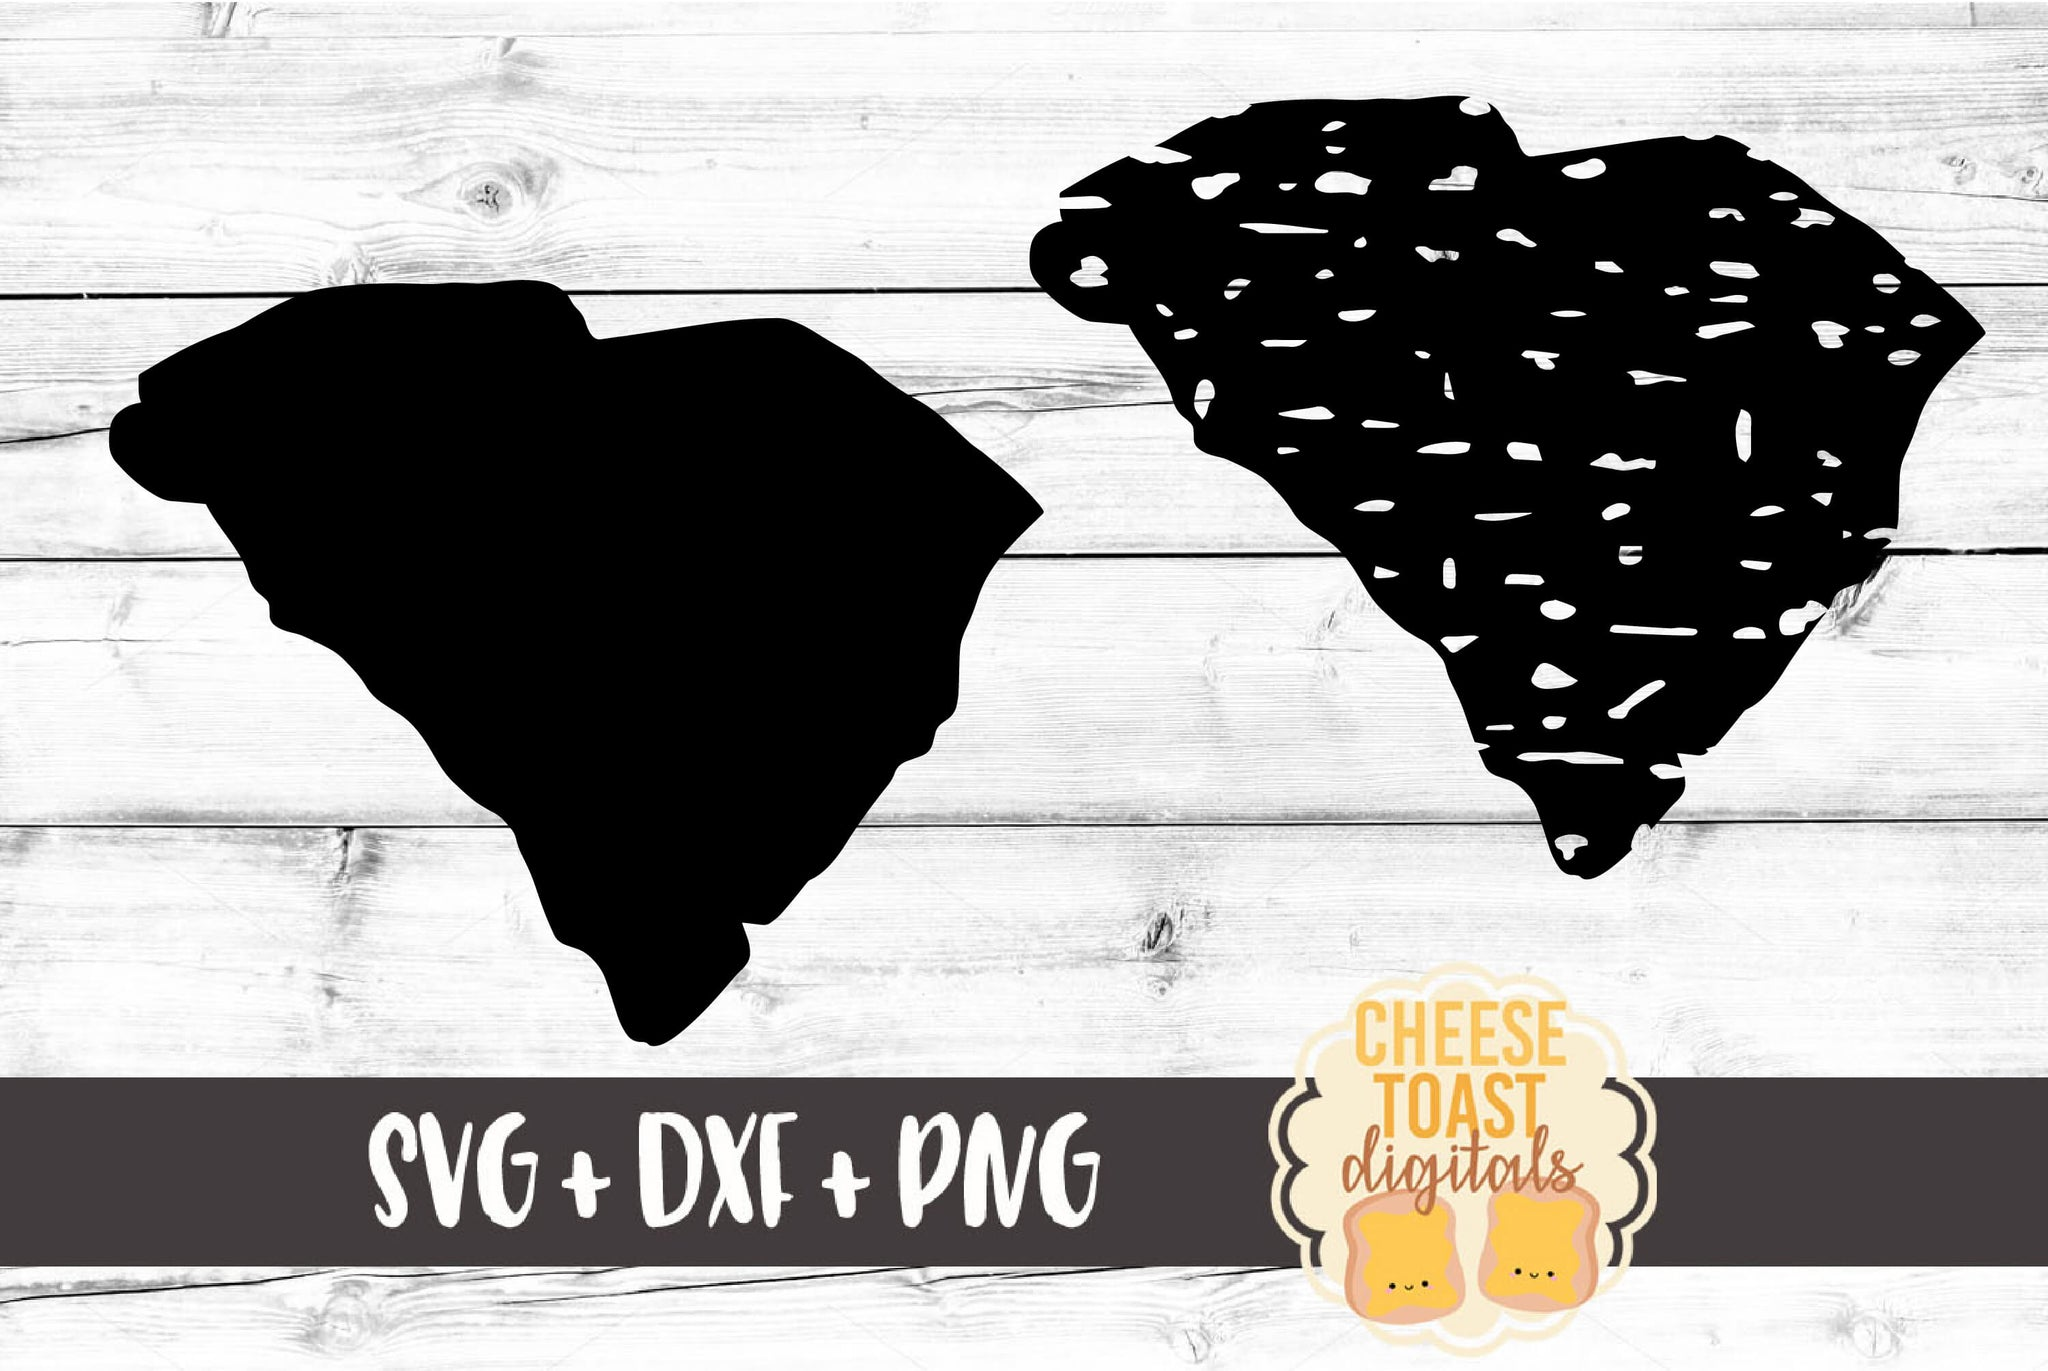 South Carolina - Grunge and Solid - SVG, PNG, DXF